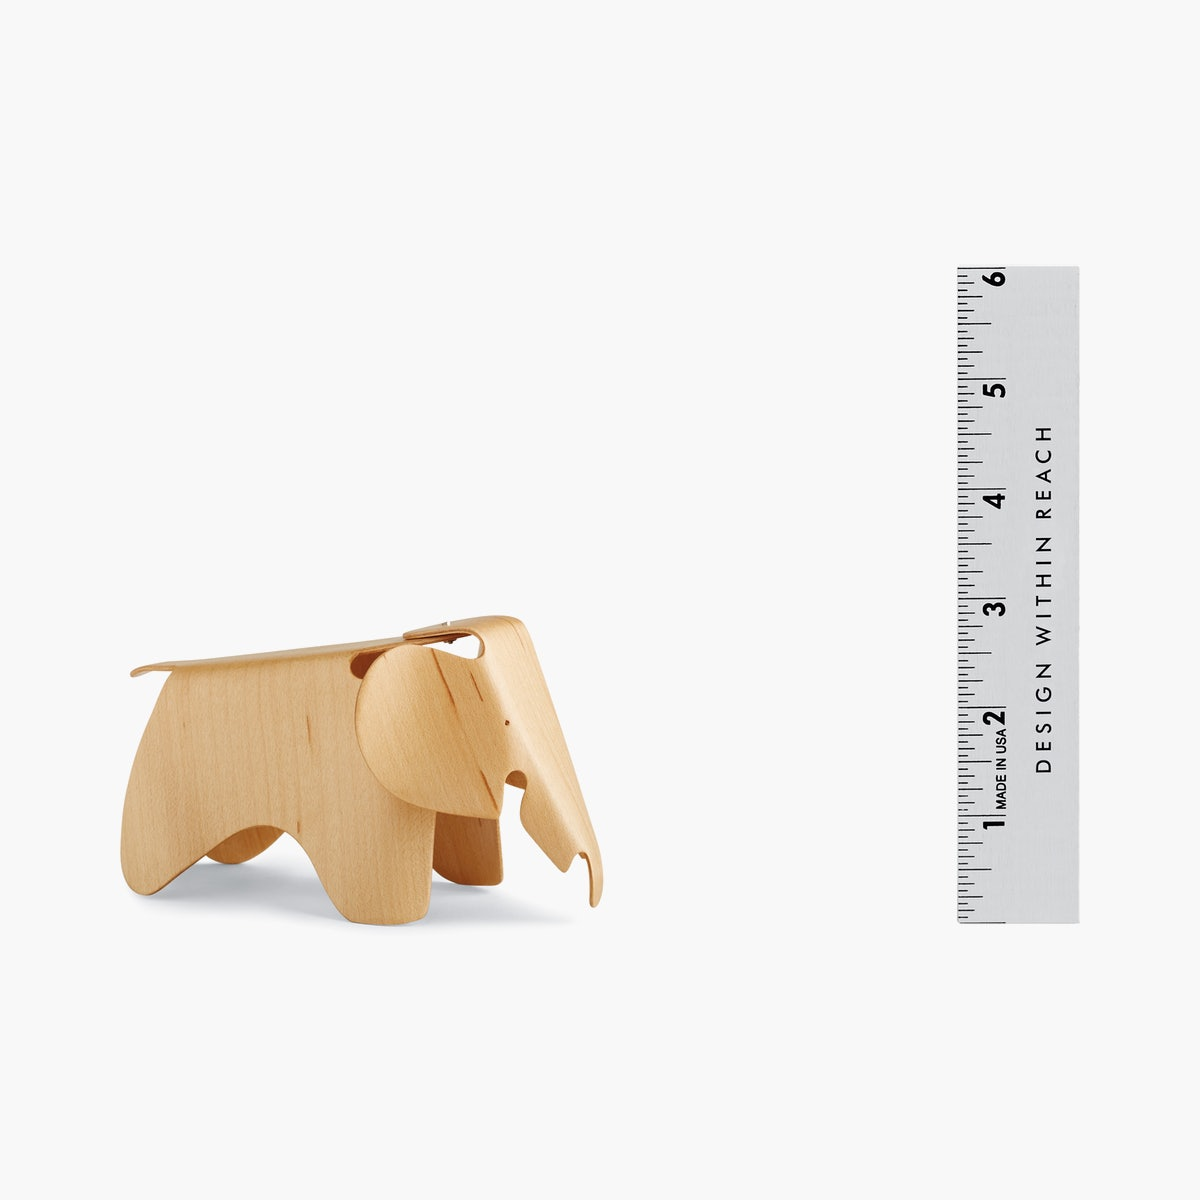 Vitra Miniatures Collection, Eames Plywood Elephant